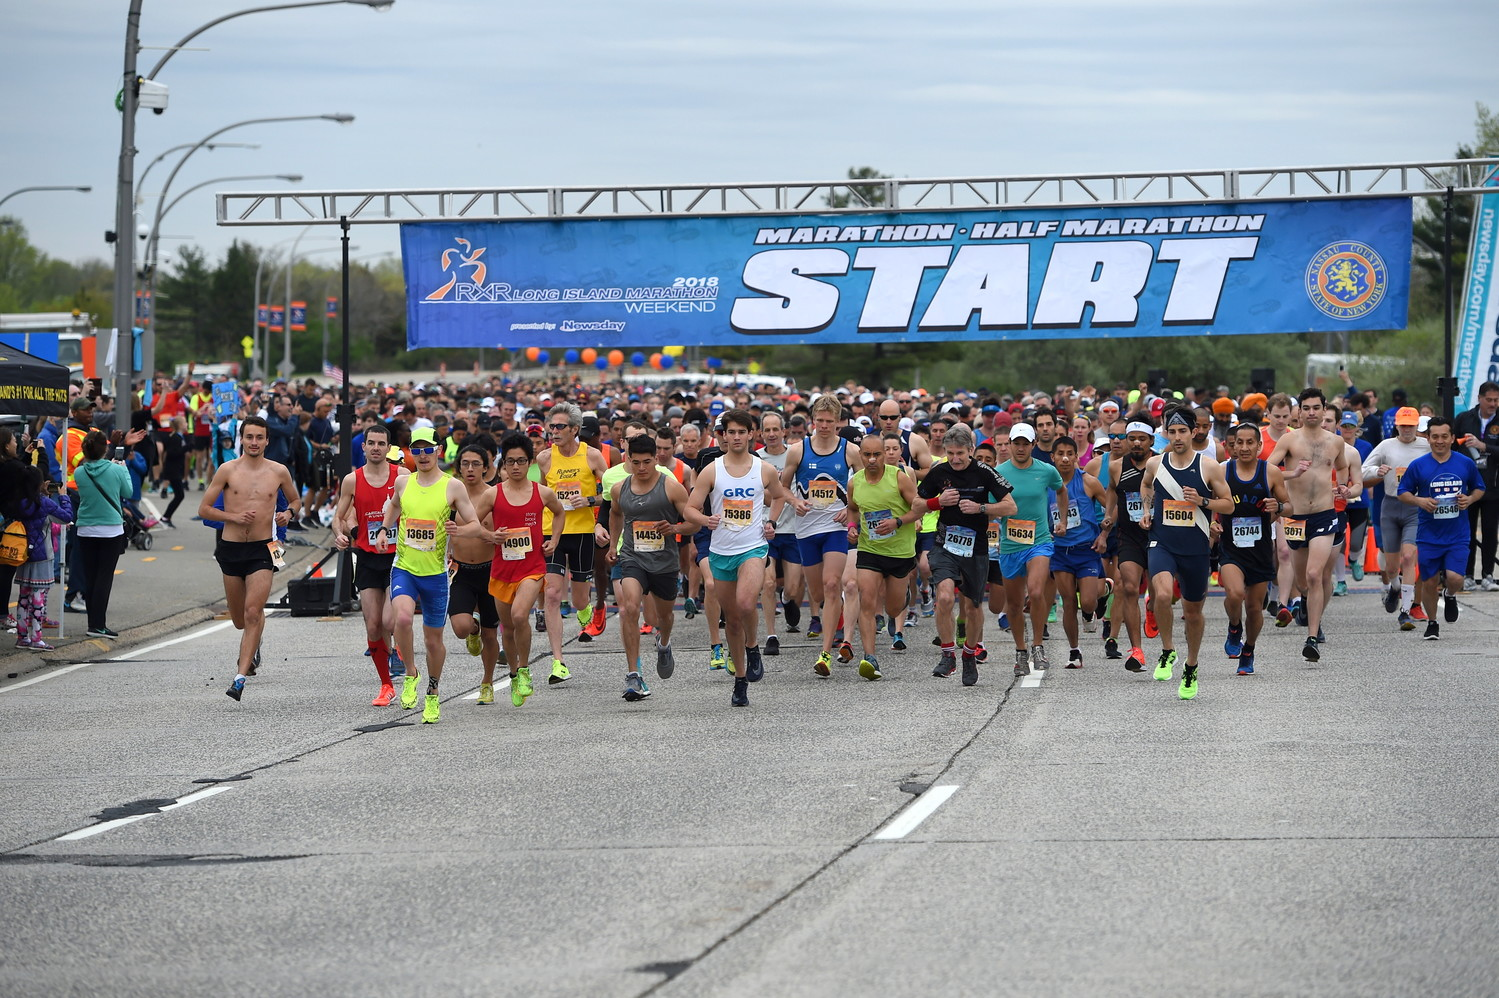 The streets of Nassau County's Hub were filled with thousands of runners who competed in the Long Island Marathon or one of four shorter races last Sunday.